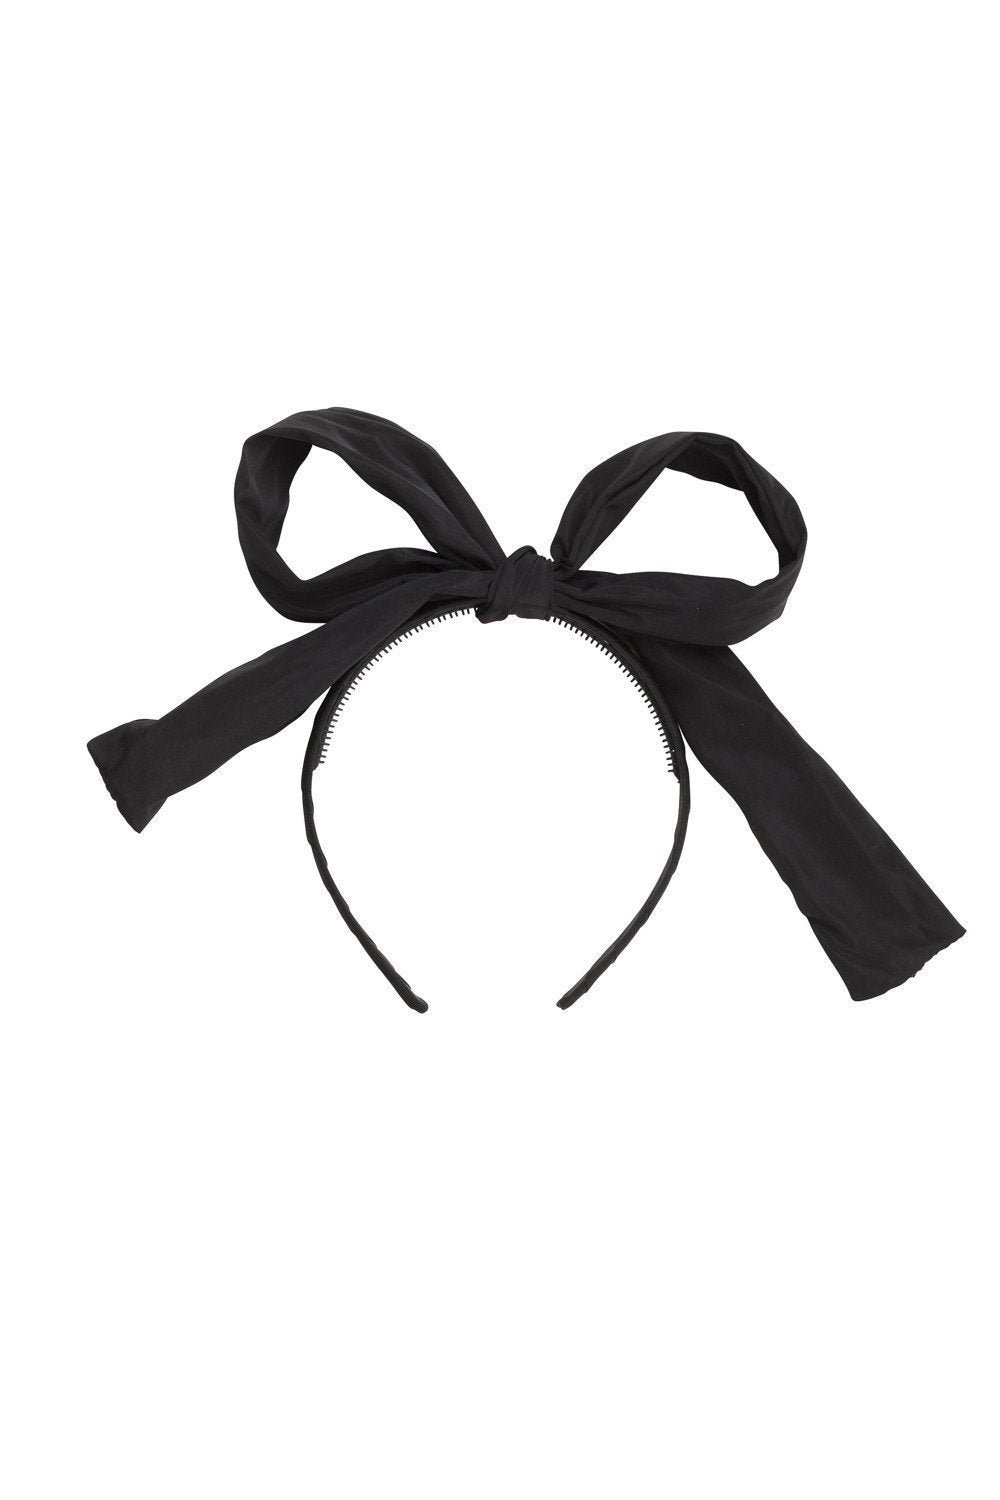 Party Bow Taffeta - Black - PROJECT 6, modest fashion